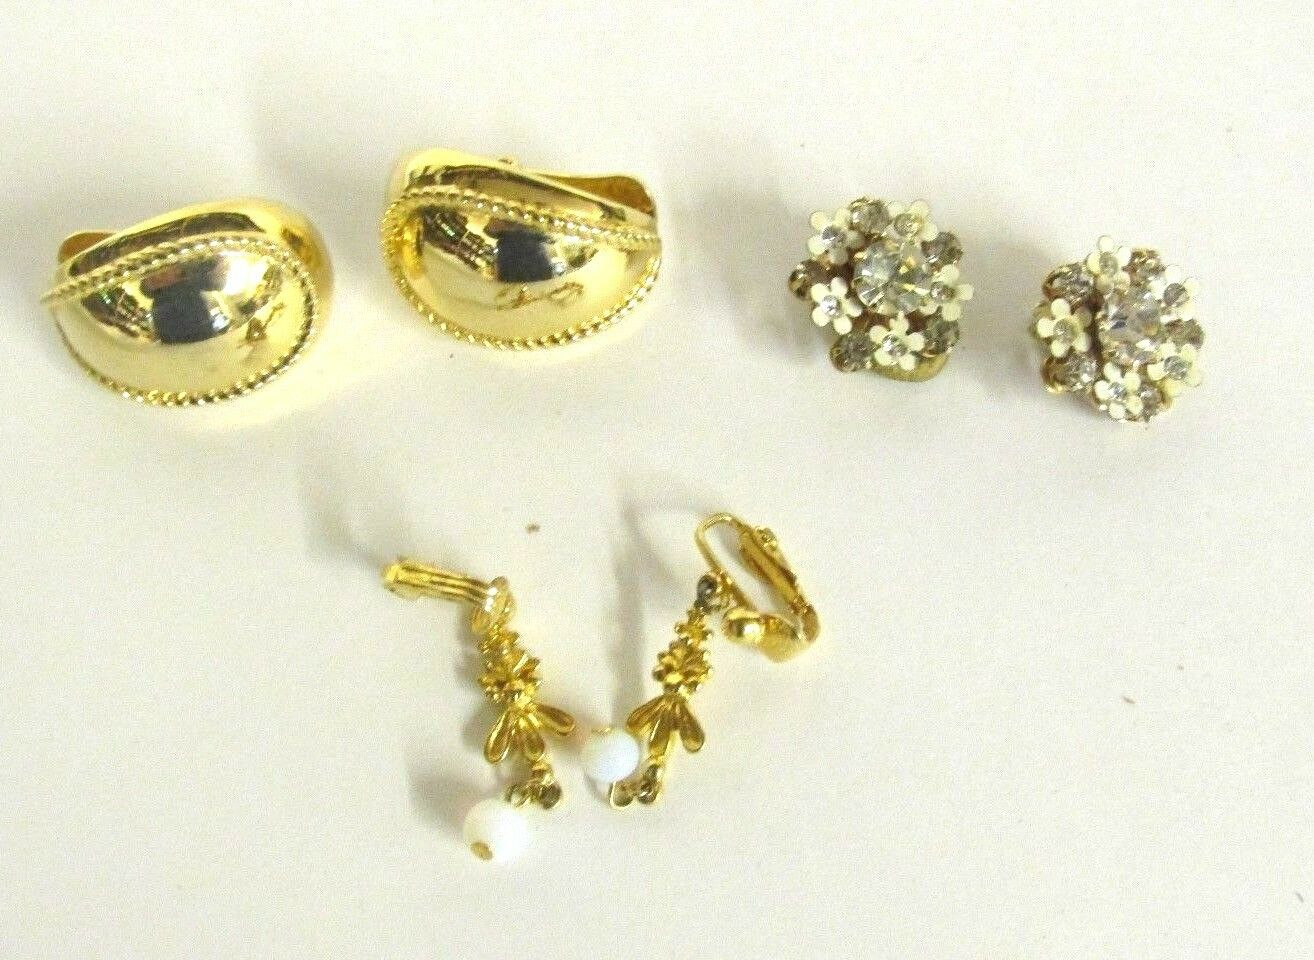 BEAUTIFUL VINTAGE CLIP ON EARRINGS gold TONE LOT OF 3 PAIRS